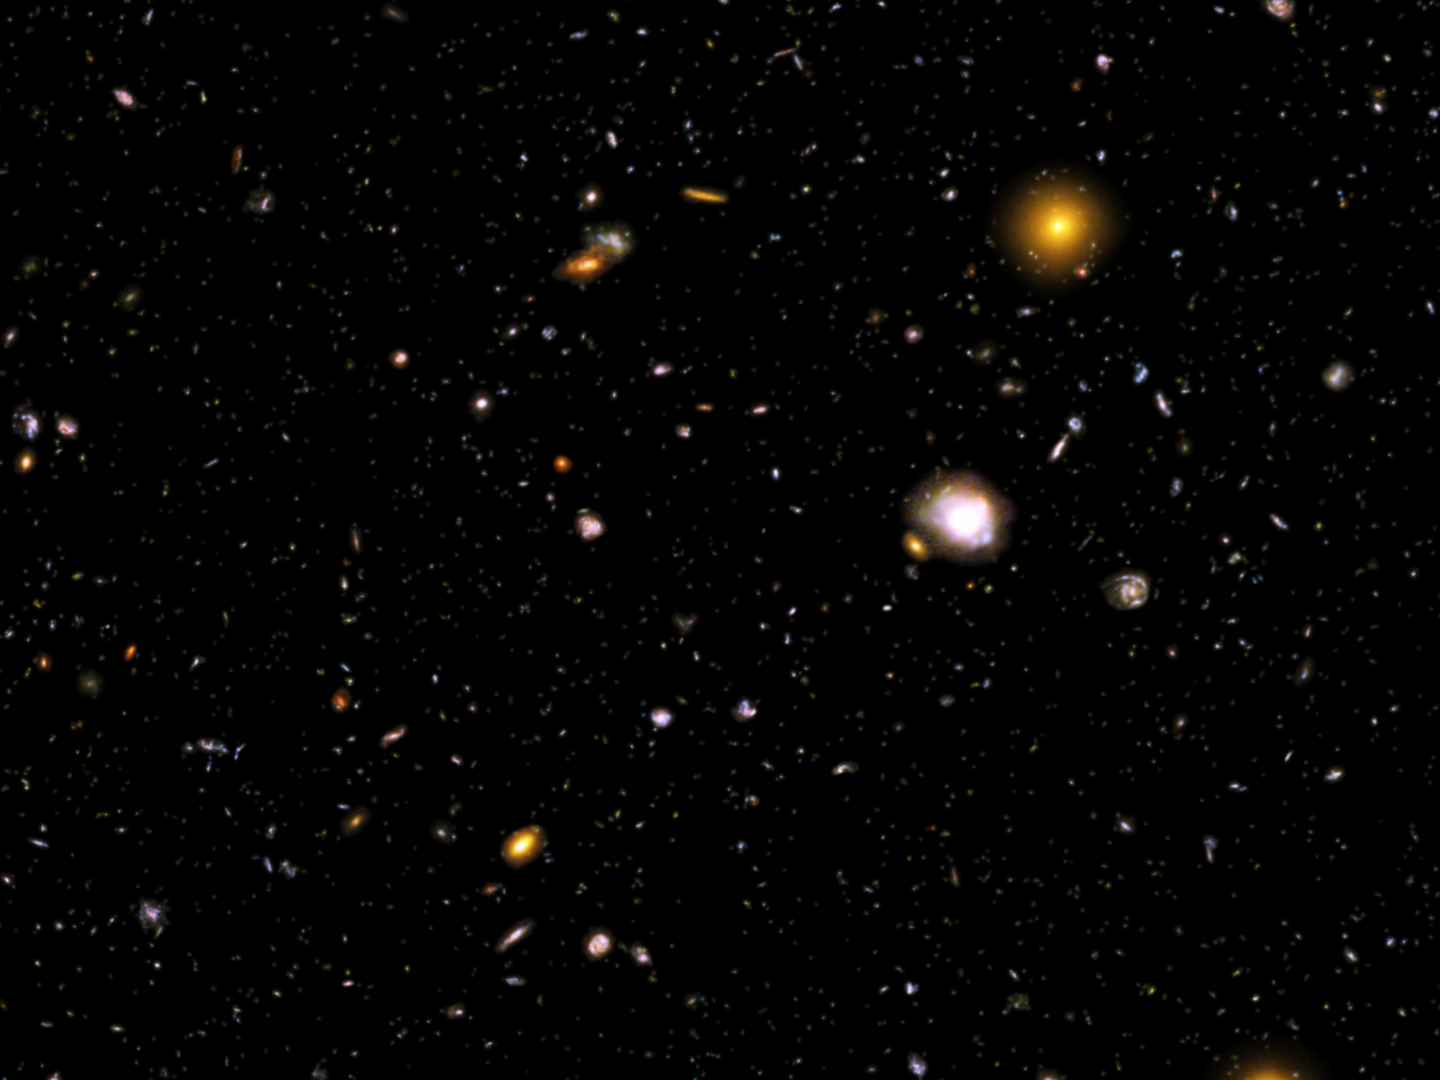 Thousands of galaxies detected by the Hubble Space Telescope